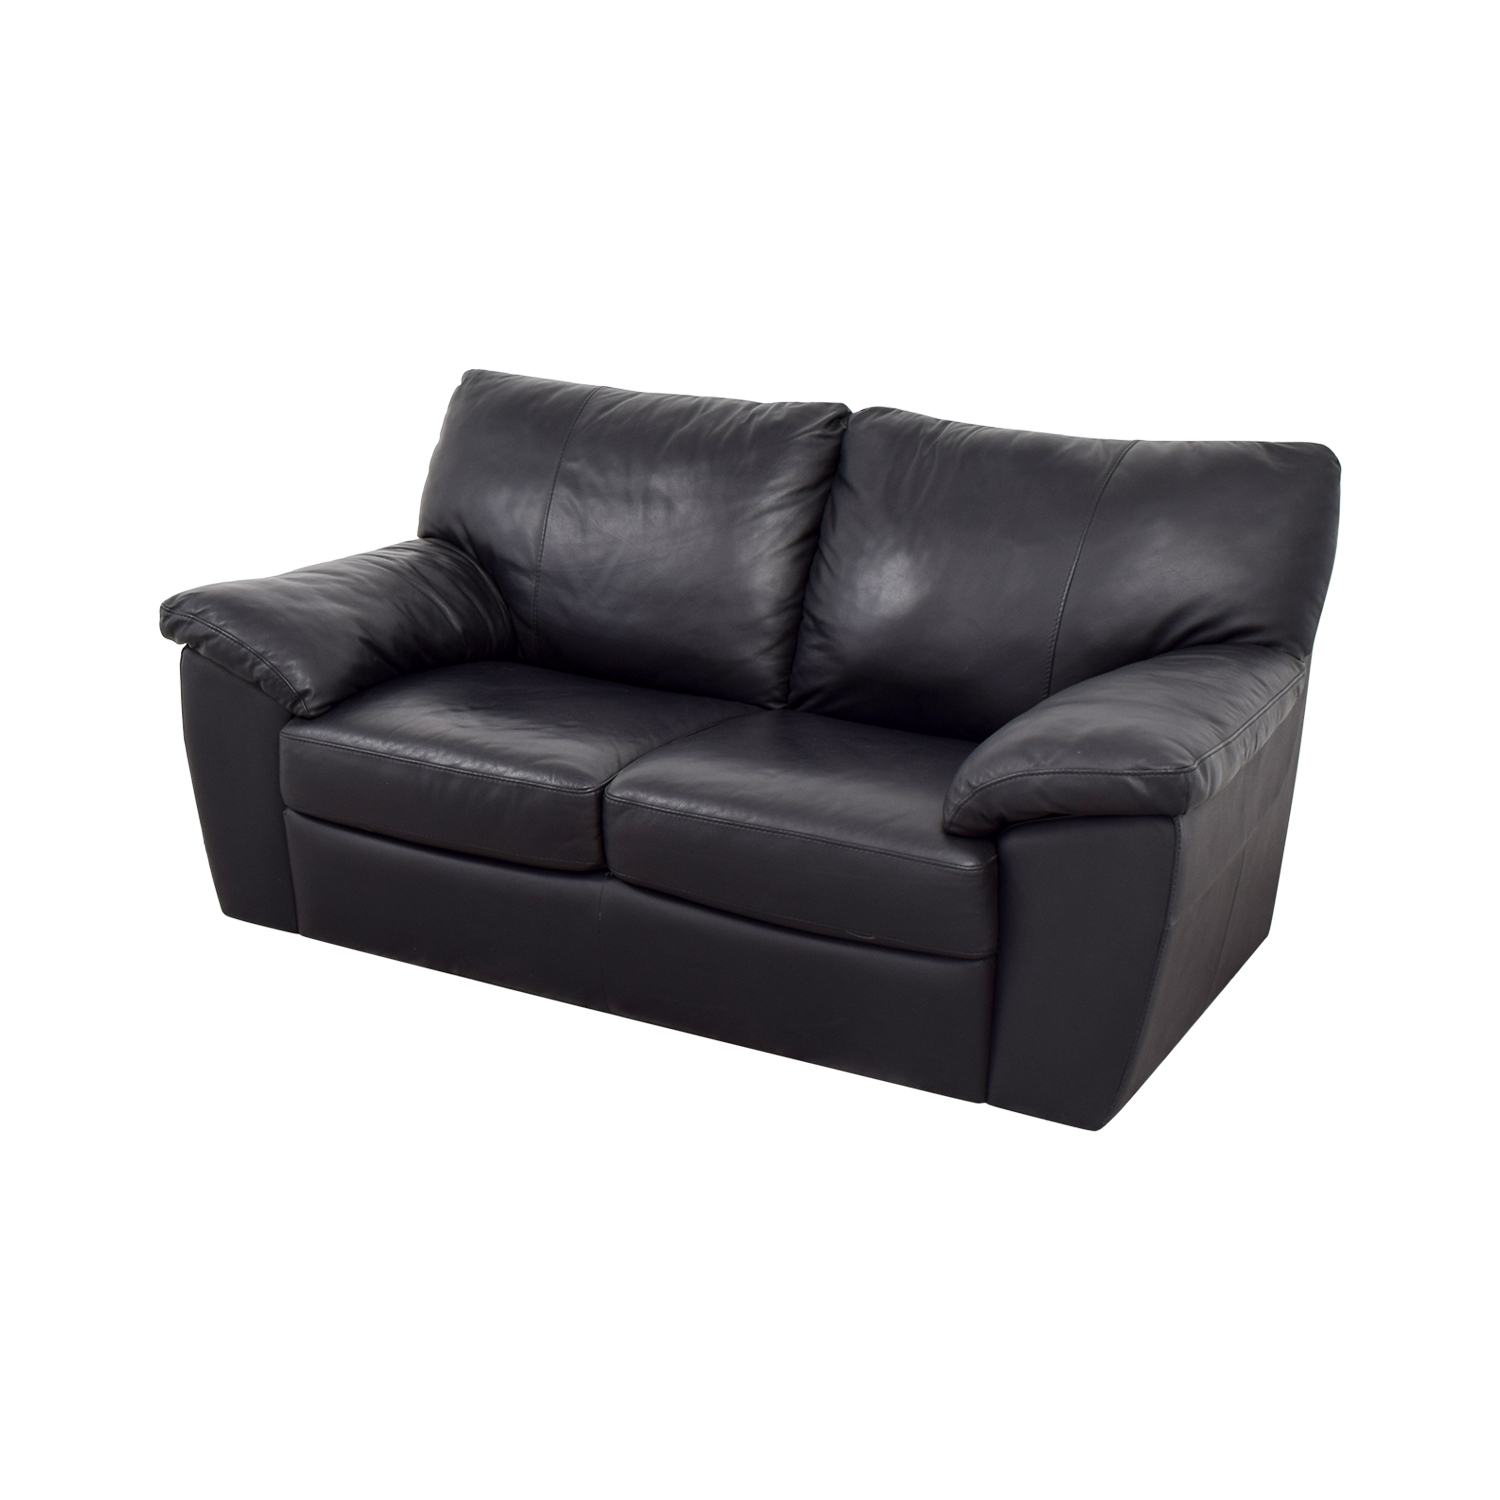 ikea sofa leather stylish ikea leather sofa best ideas about bed on thesofa. Black Bedroom Furniture Sets. Home Design Ideas